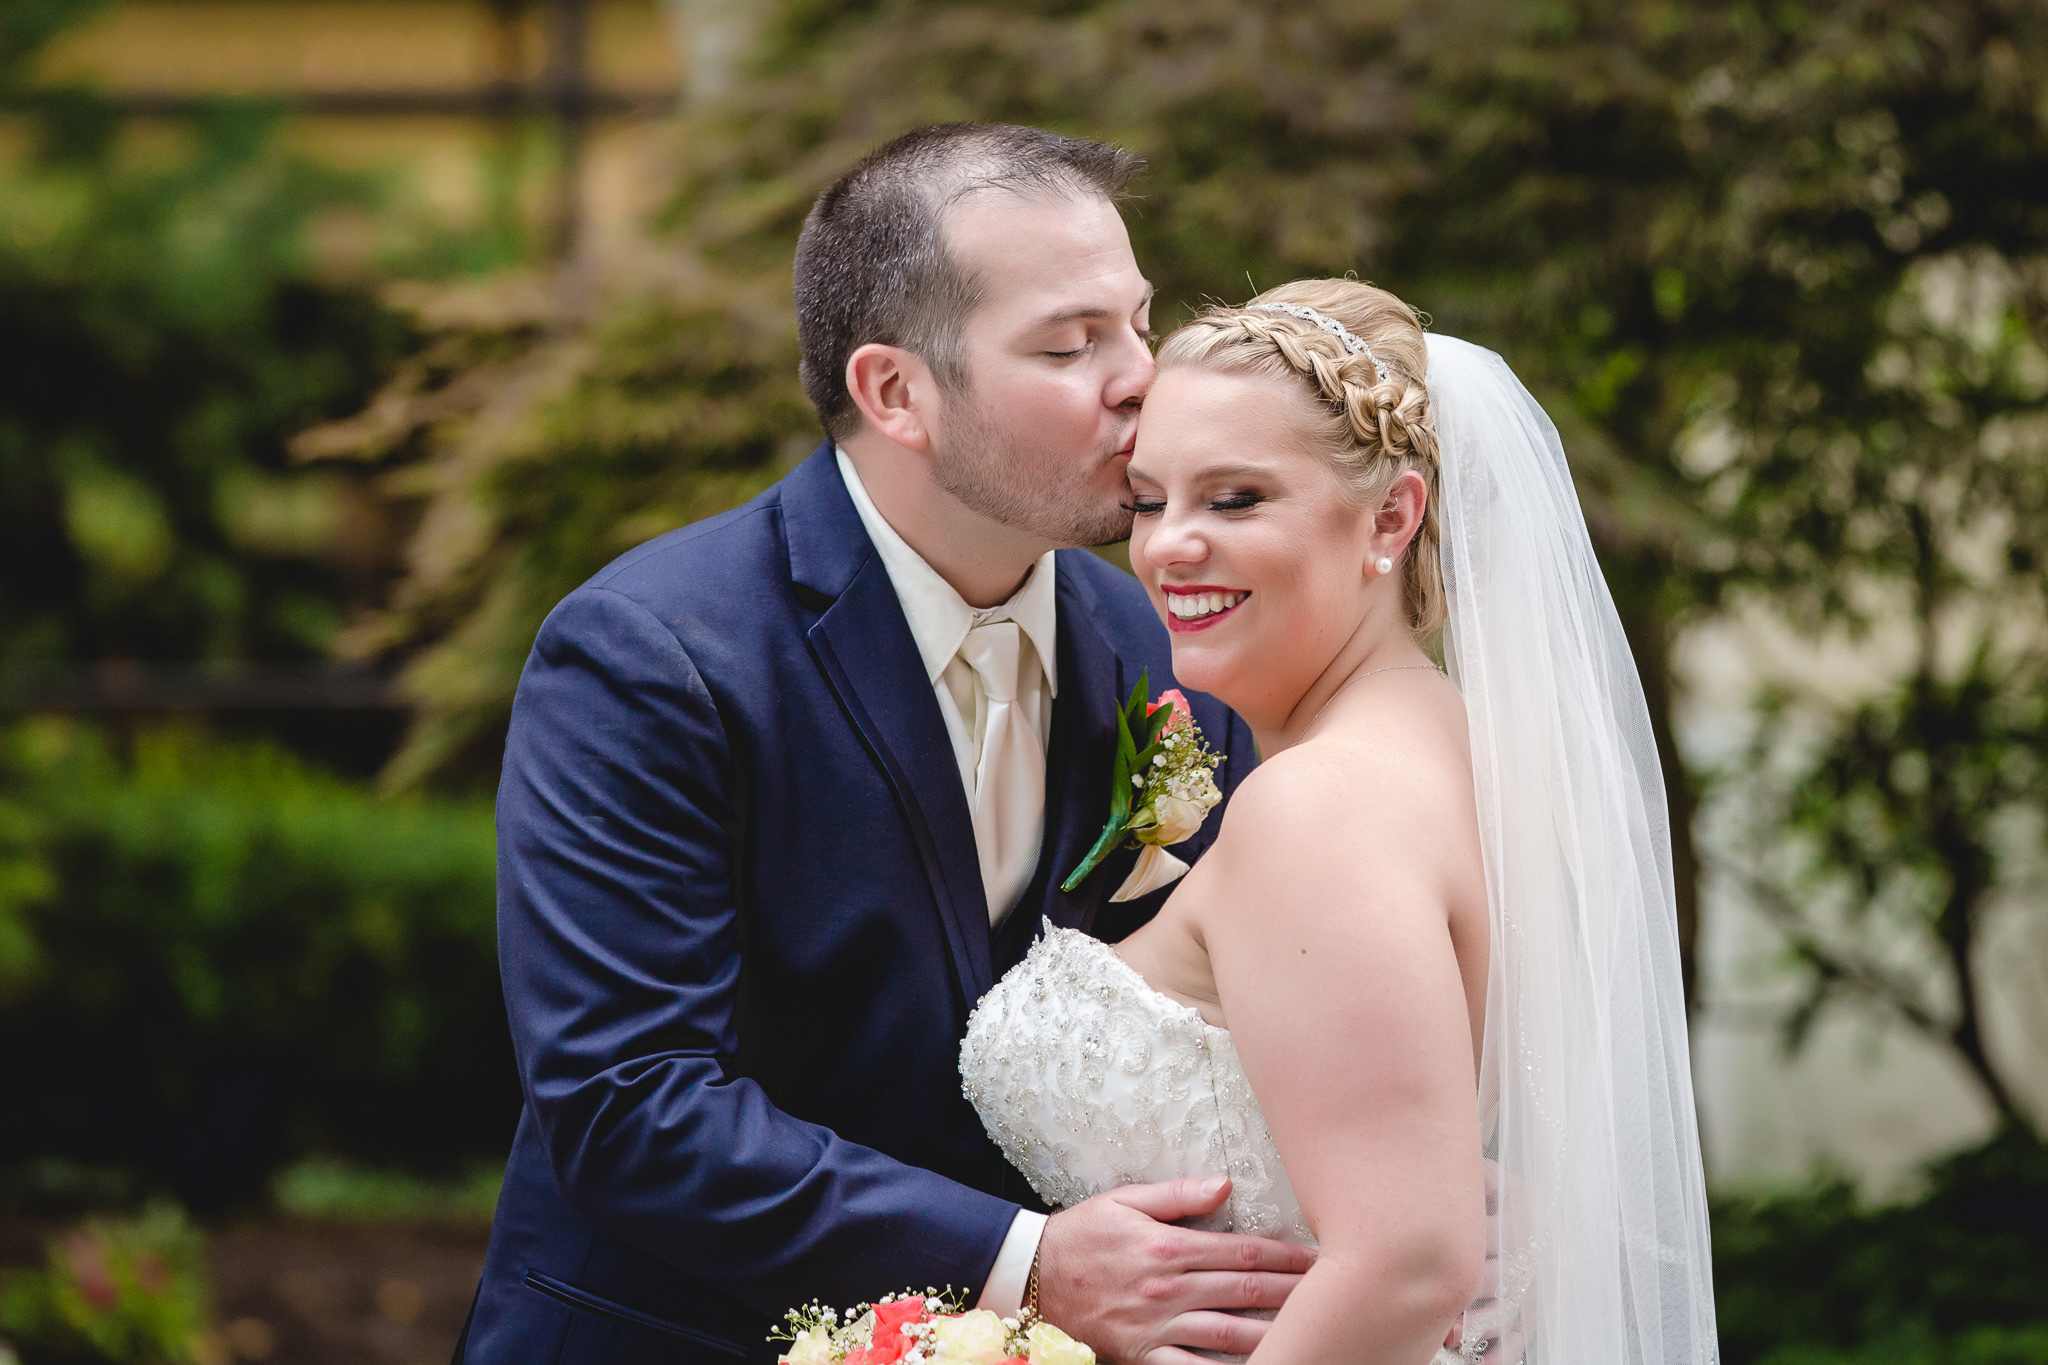 Groom kisses his bride in the courtyard of the Pittsburgh Airport Marriott